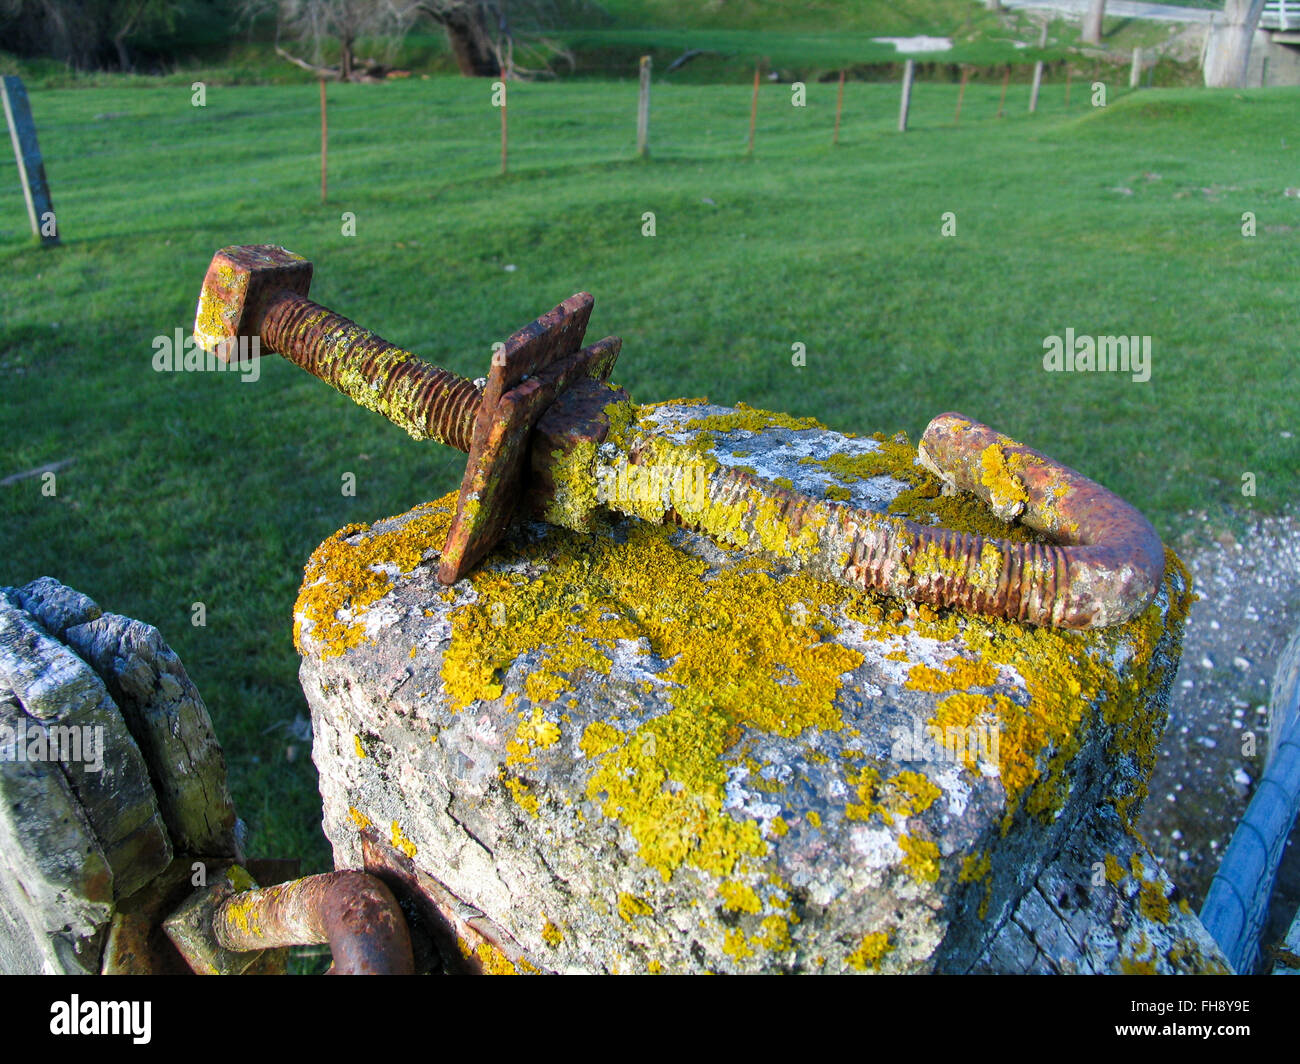 A large rusty moss covered bold on a fencepost. - Stock Image